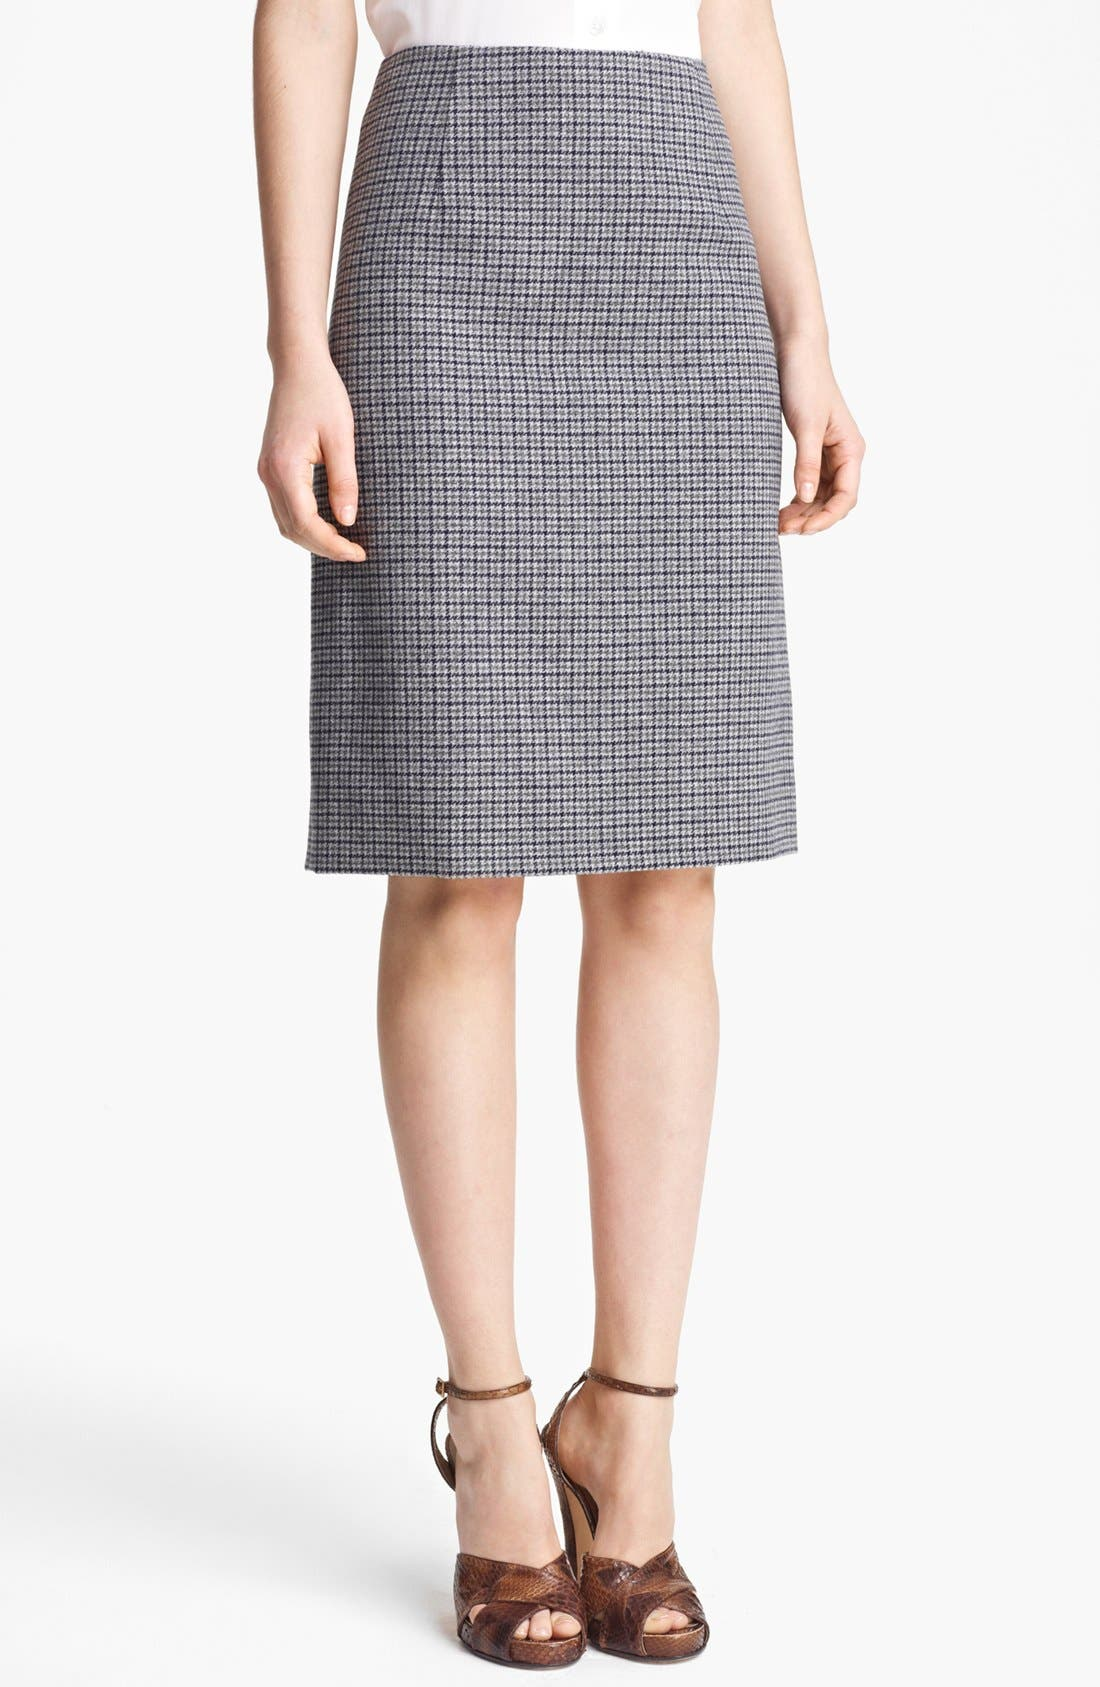 Alternate Image 1 Selected - MARC JACOBS Wool Houndstooth Pencil Skirt